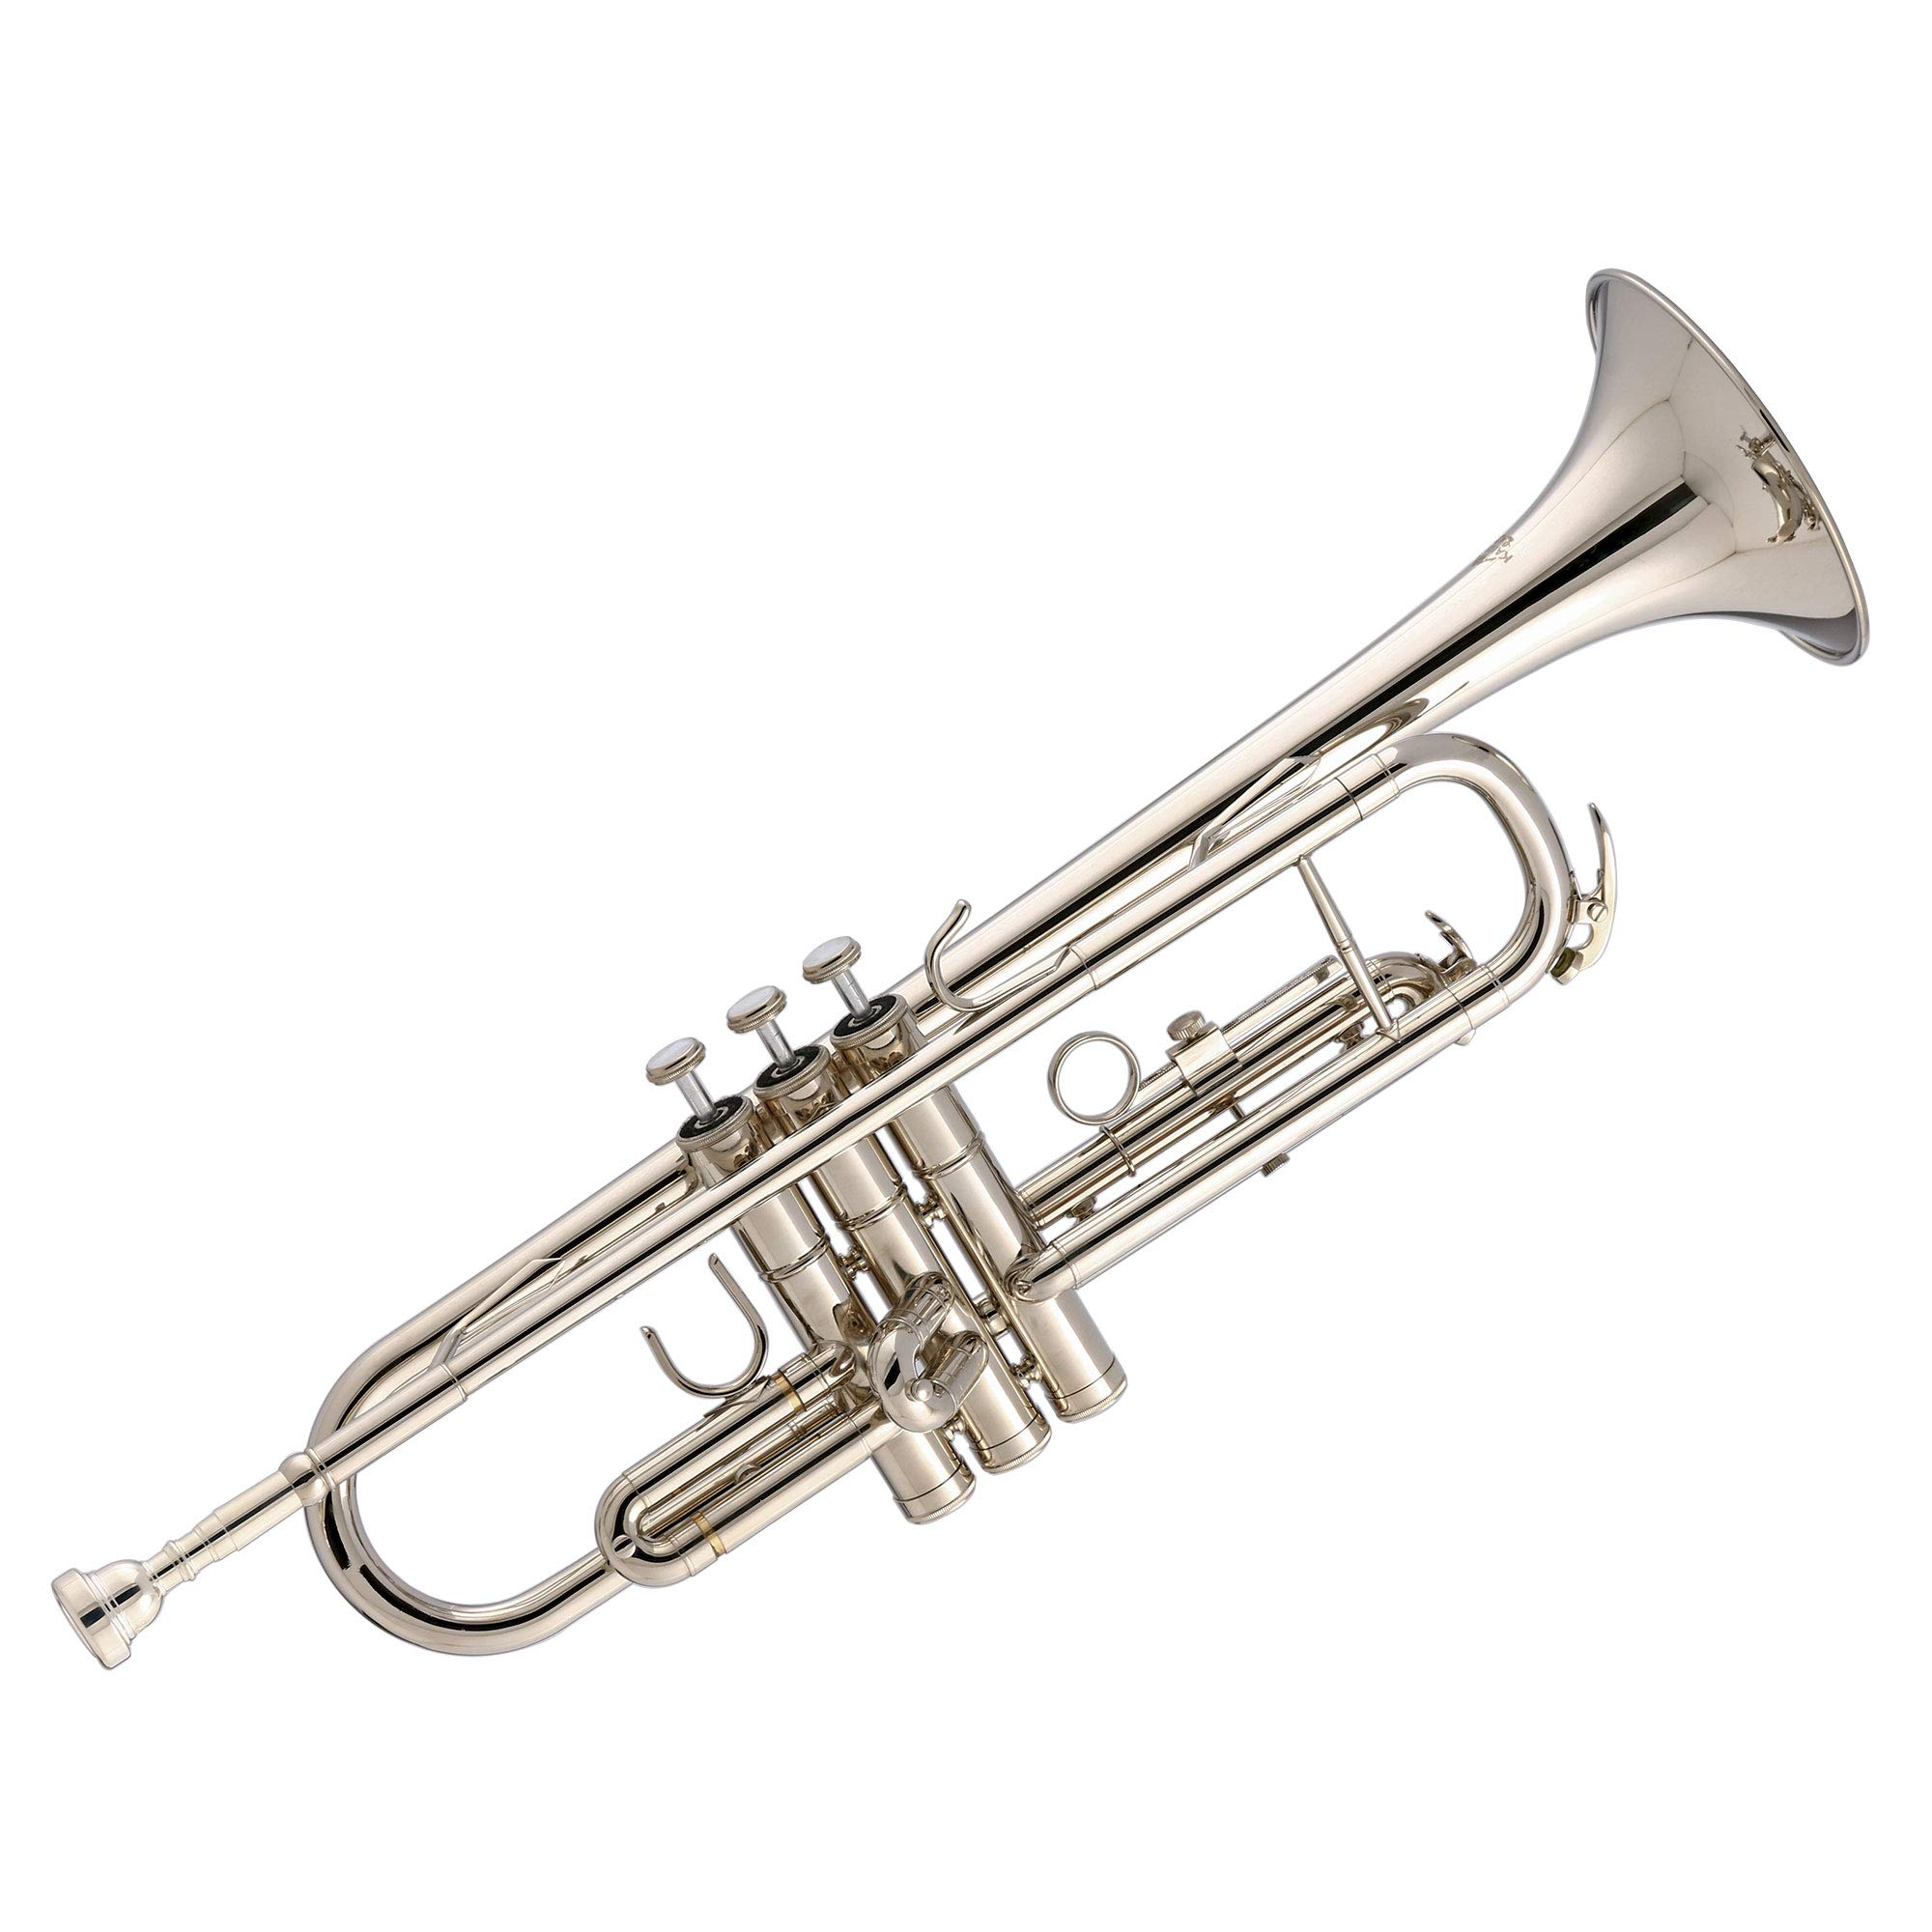 Kaizer TRP-1000NK Standard B Flat Bb Student Trumpet - Nickel Silver by Kaizer